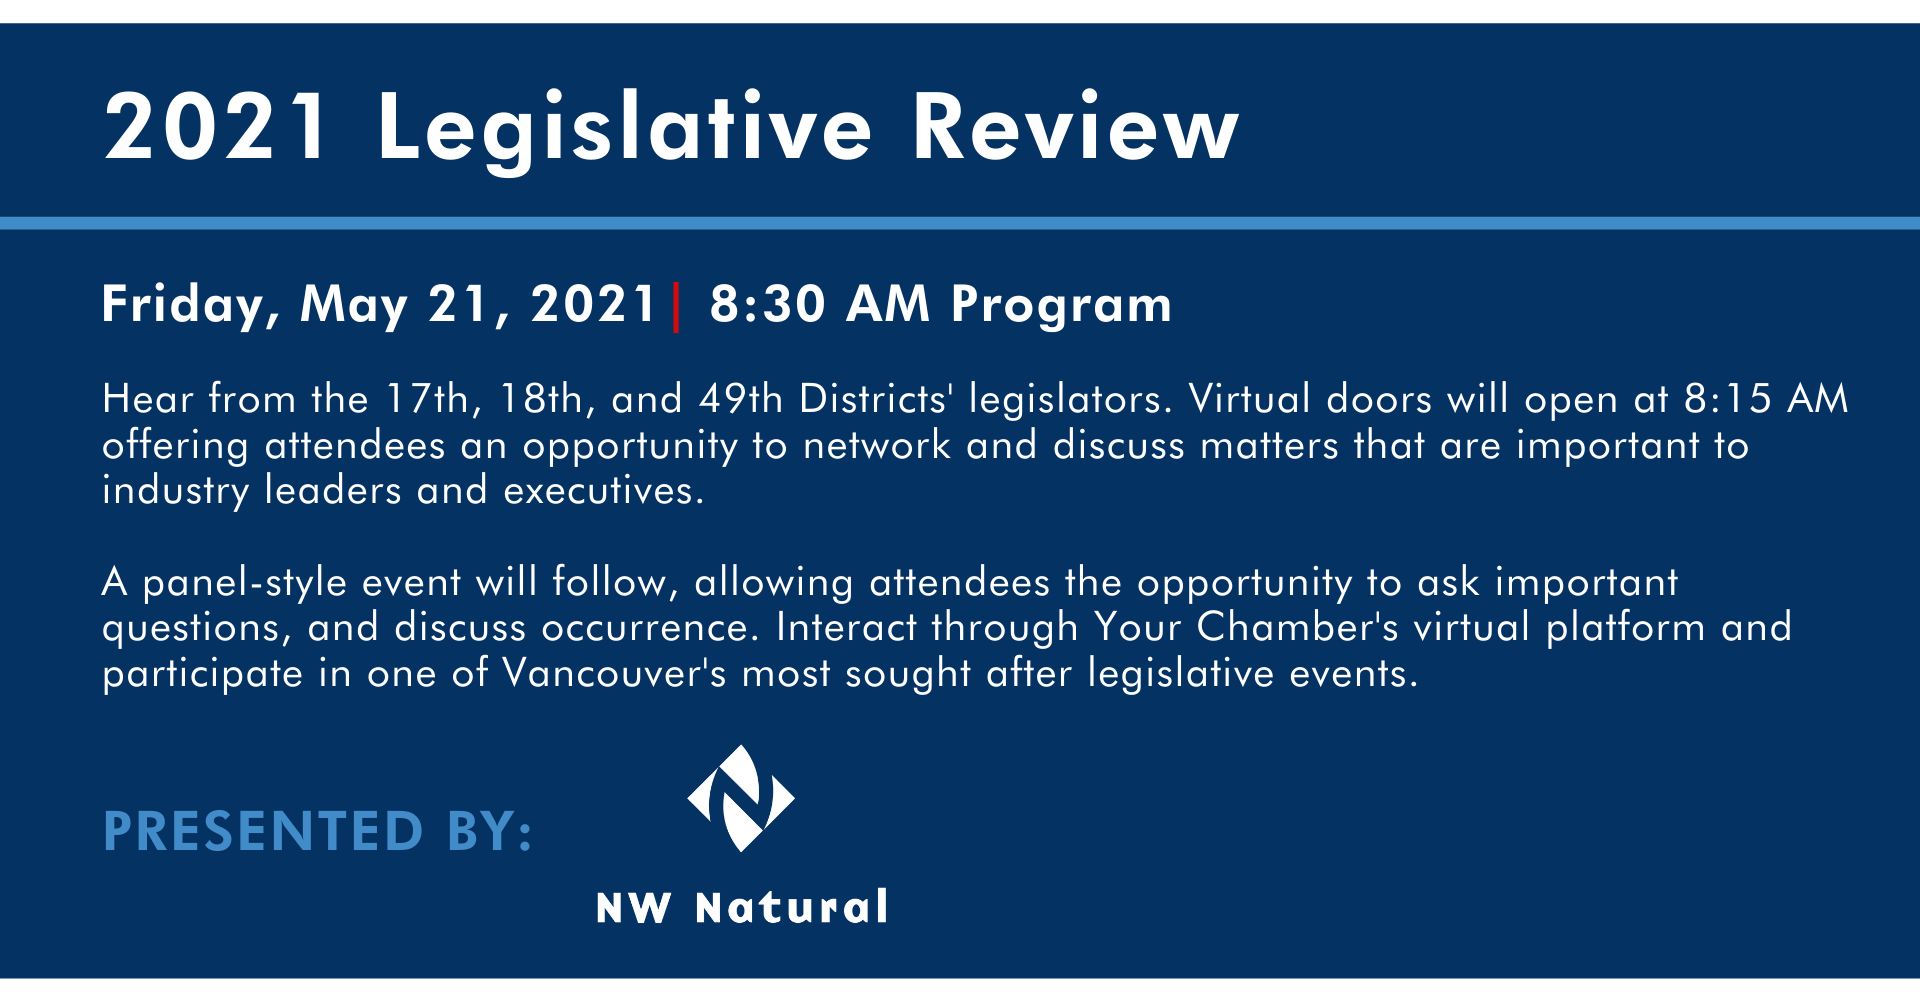 presented by nw natural northwest natural pacific northwest 2021 Legislative review Hear from the 17th, 18th, and 49th Districts' legislators. Virtual doors will open at 8:15 AM offering attendees an opportunity to network and discuss matters that are important to industry leaders and executives. Friday, May 28, 2021| 8:30 AM Program  A panel-style event will follow, allowing attendees the opportunity to ask important questions, and discuss occurrence. Interact through Your Chamber's virtual platform and participate in one of Vancouver's most sought after legislative events.